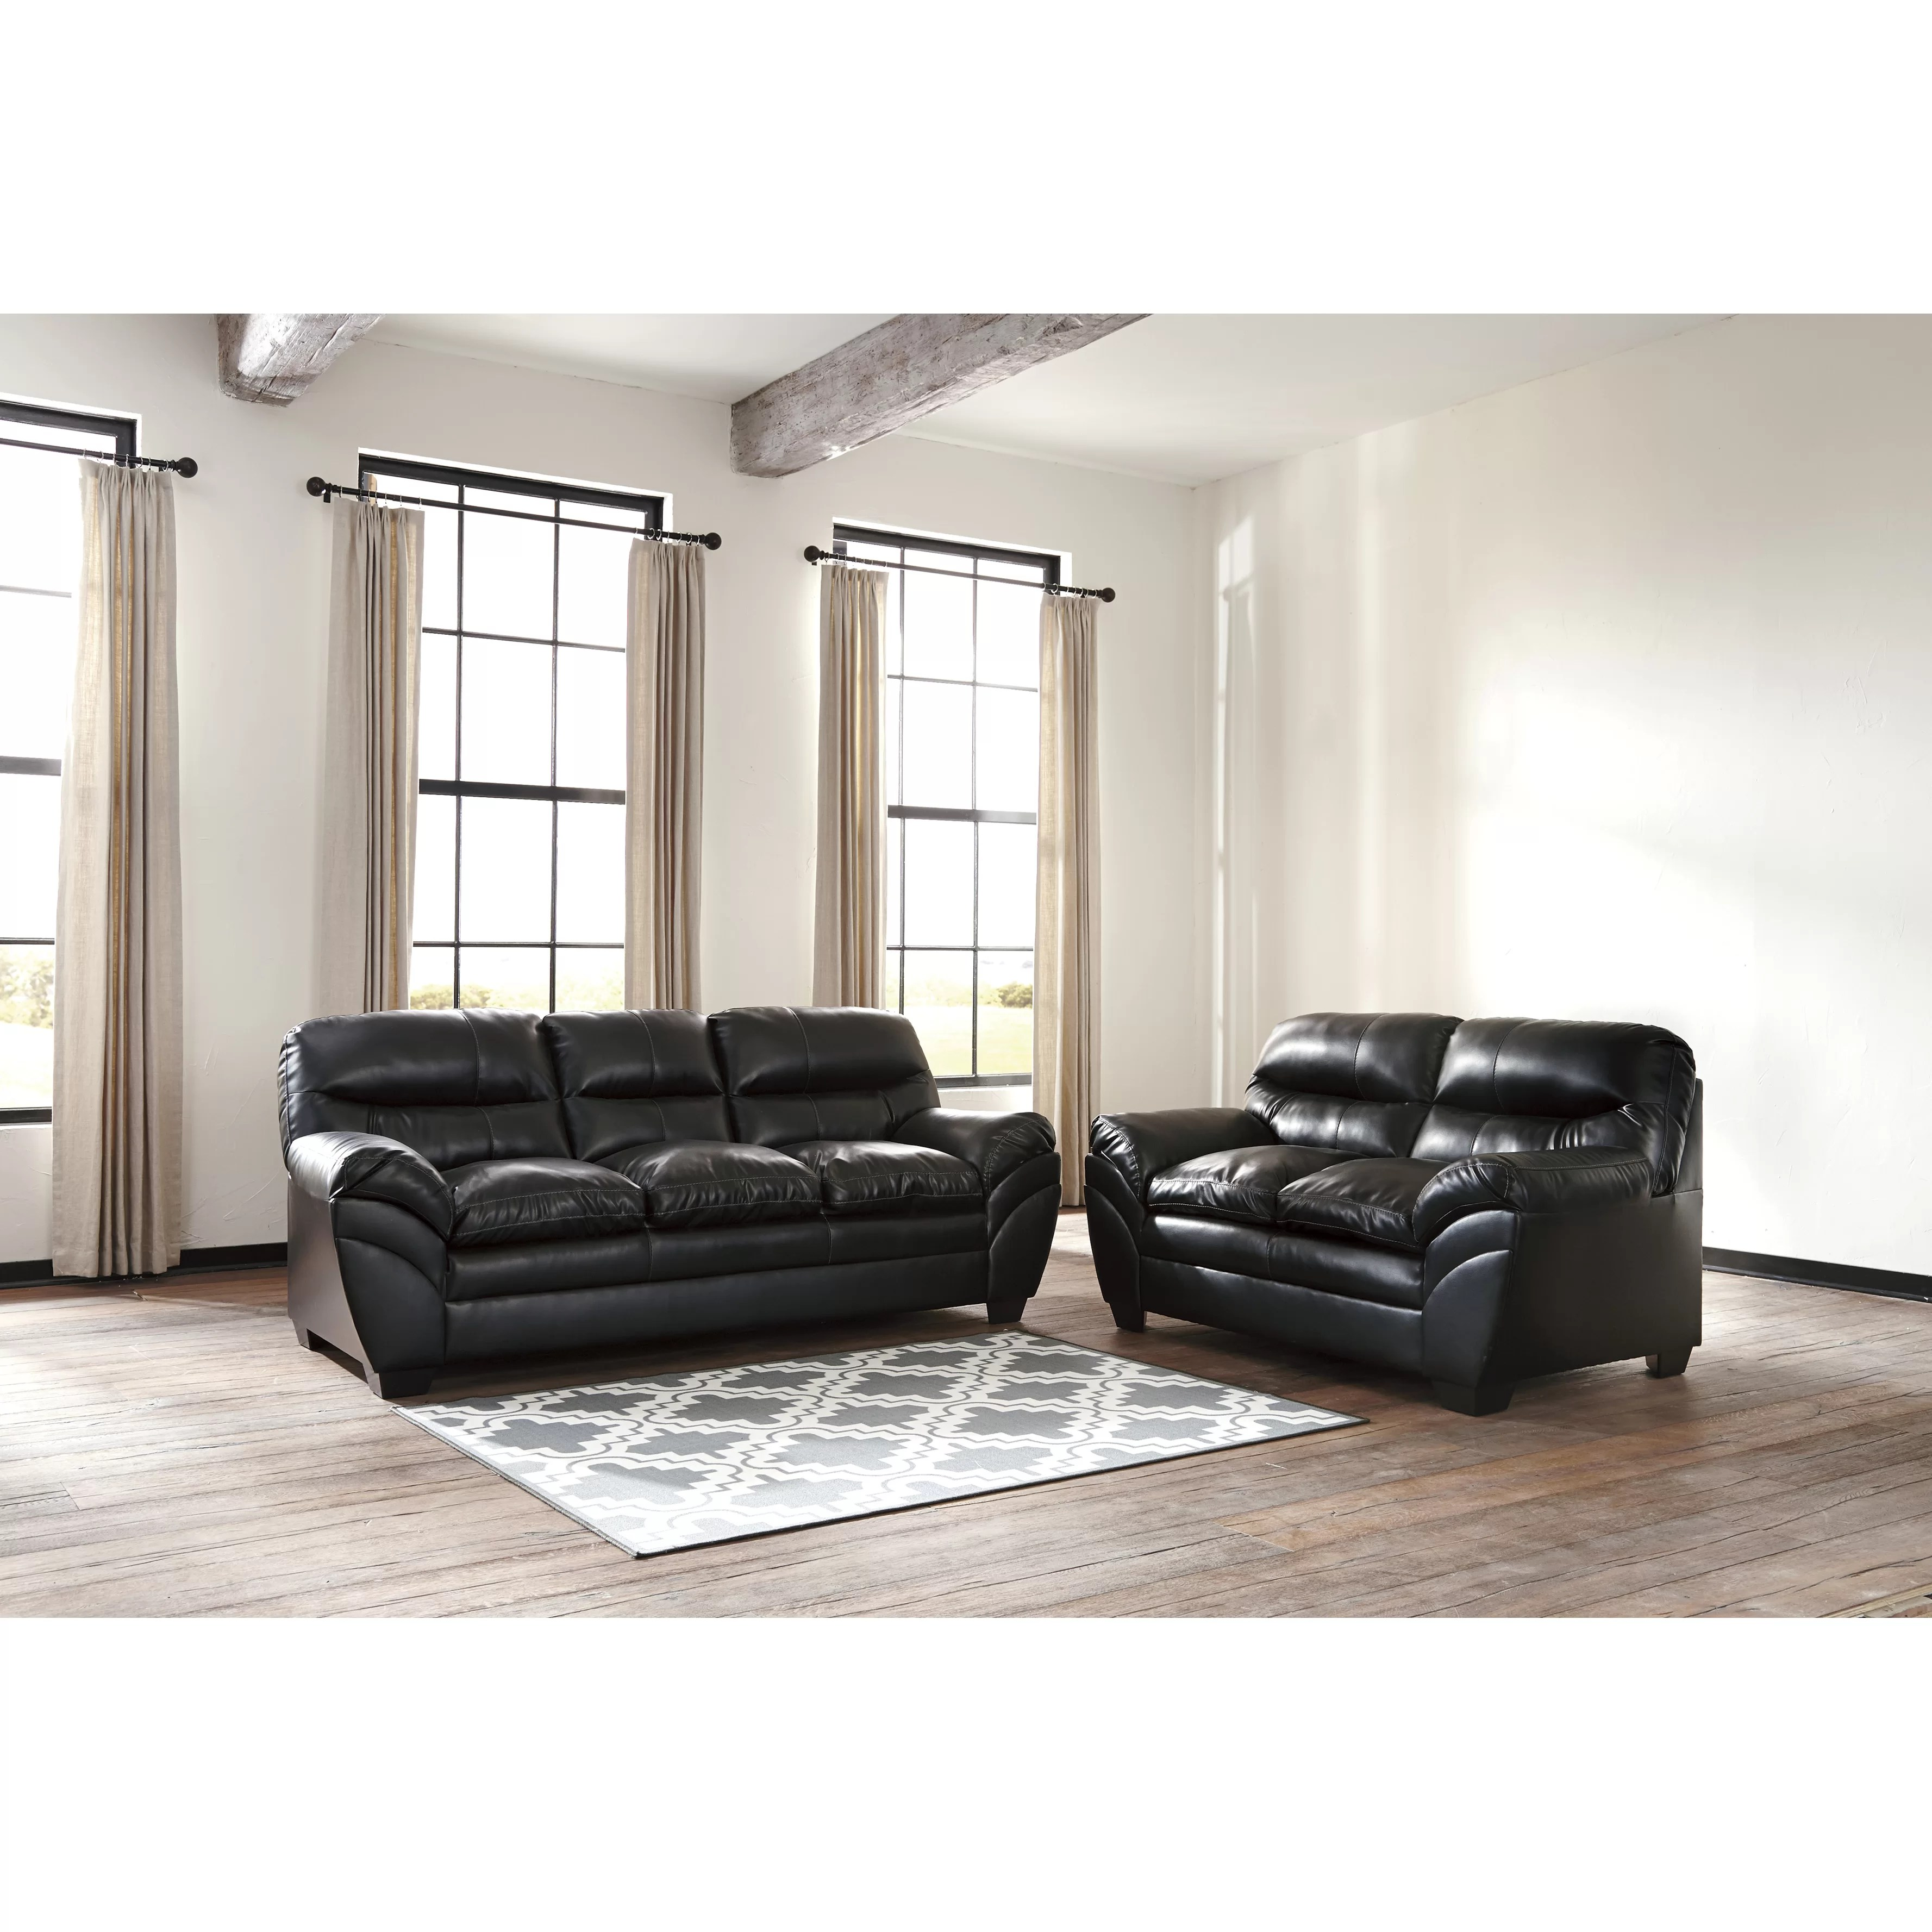 signature design by ashley harvest sleeper sofa curved for bay window tassler and reviews wayfair